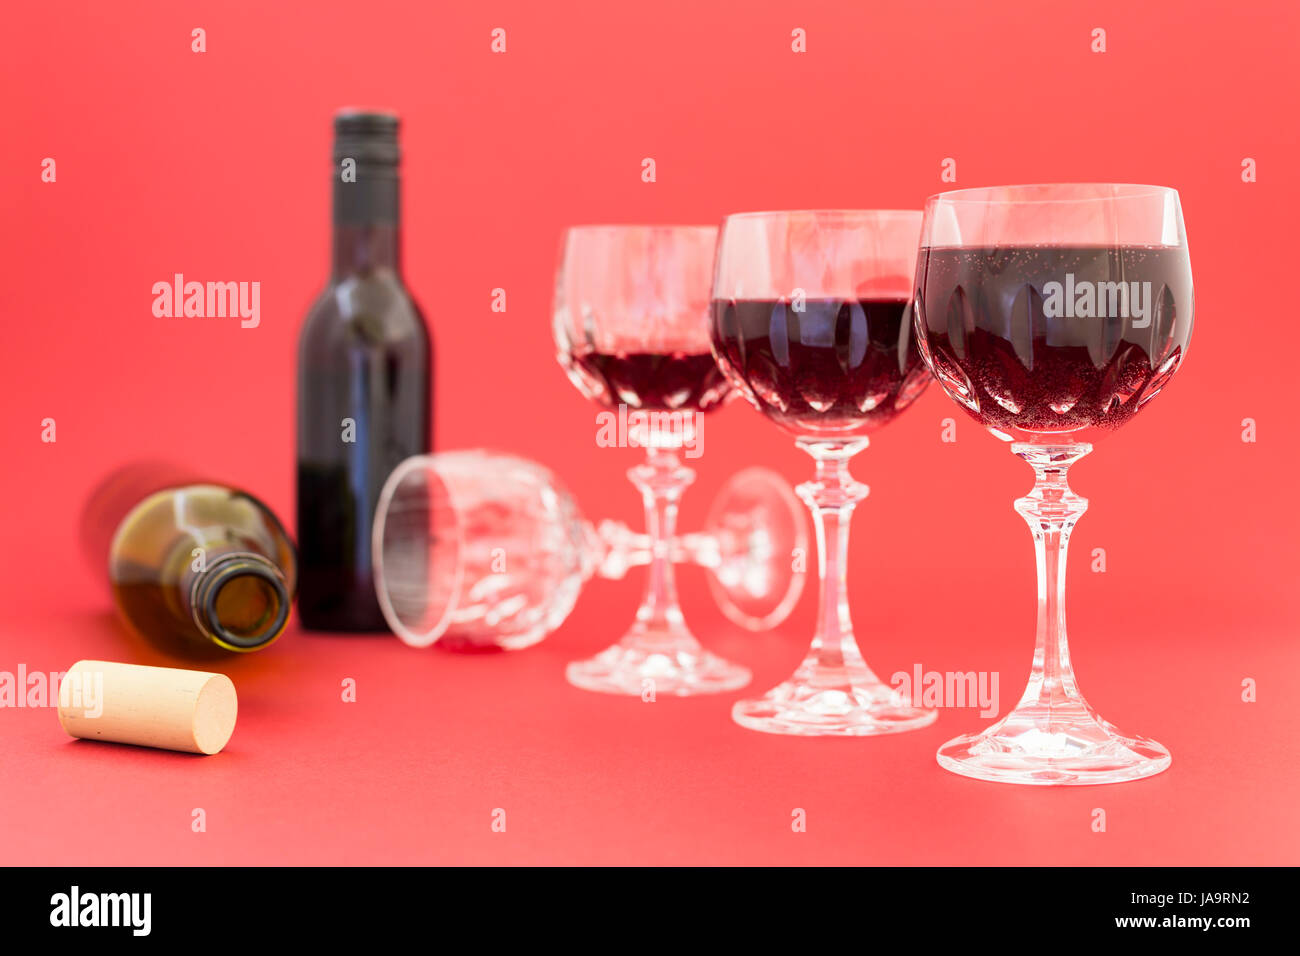 Concept of alcohol consumption, alcoholism and abuse with a line of beautiful crystal glasses filled with red wine, - Stock Image